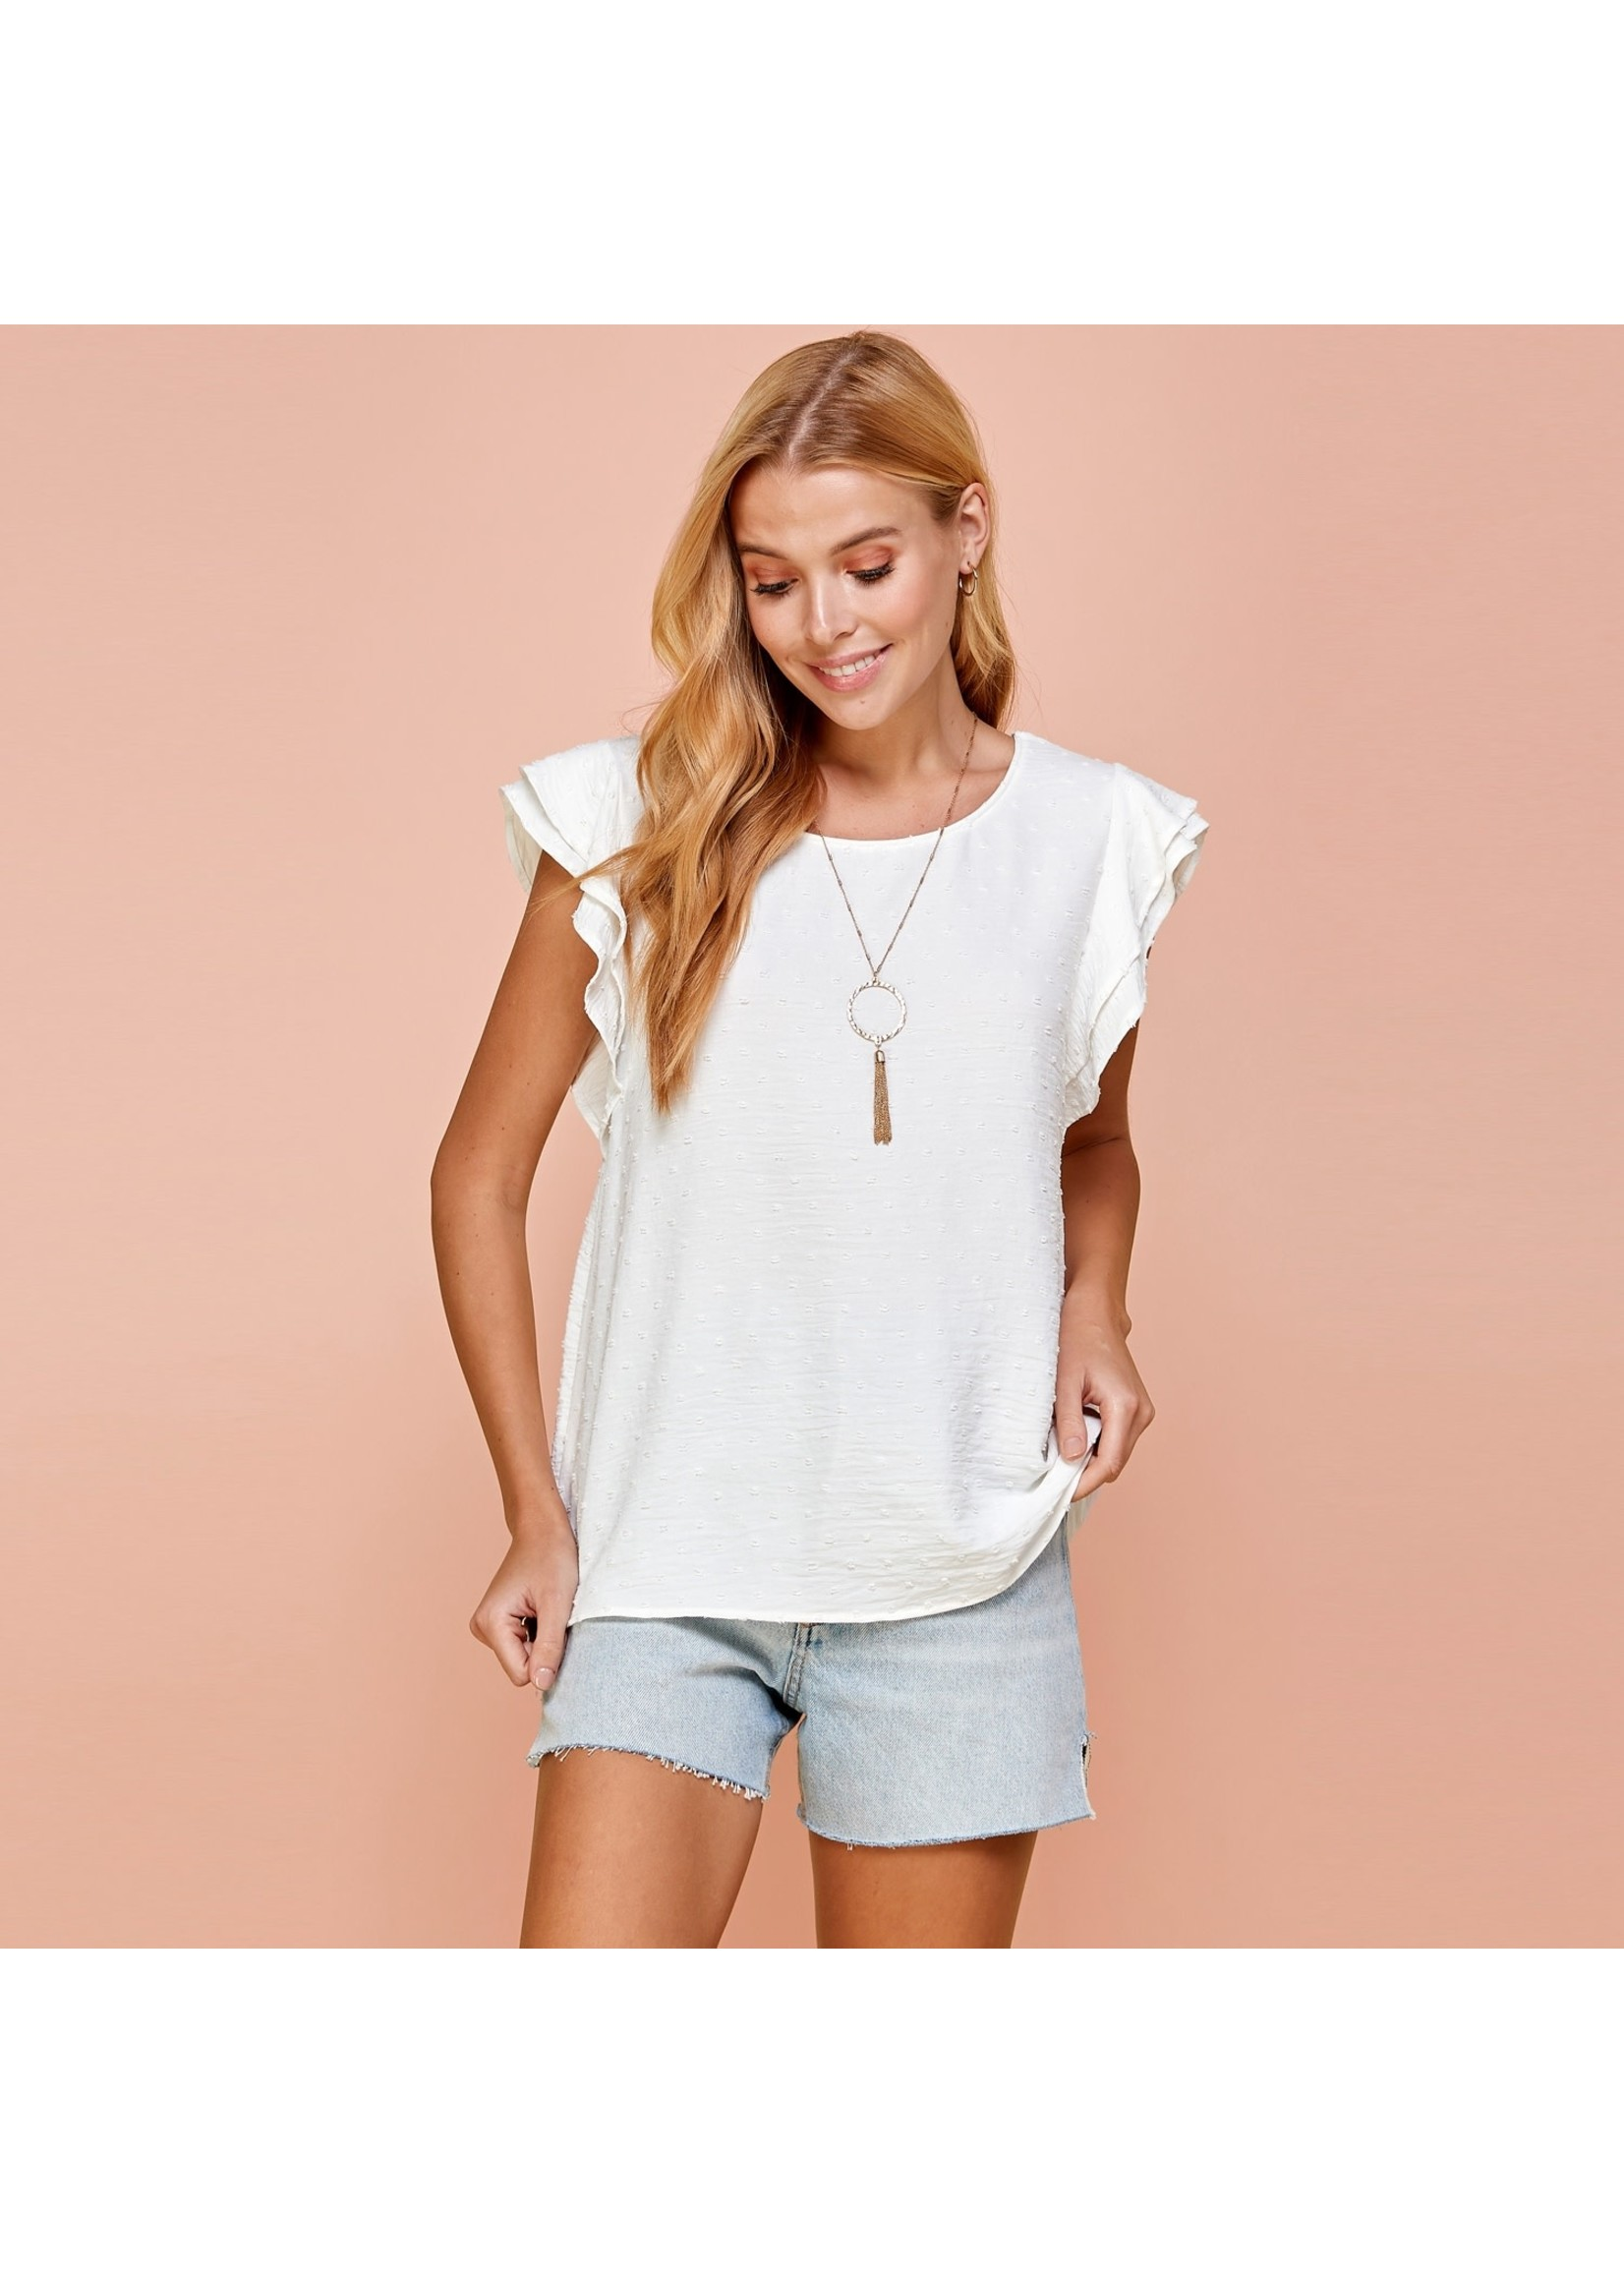 Les Amis Ruffle Sleeve Top with Dot Details